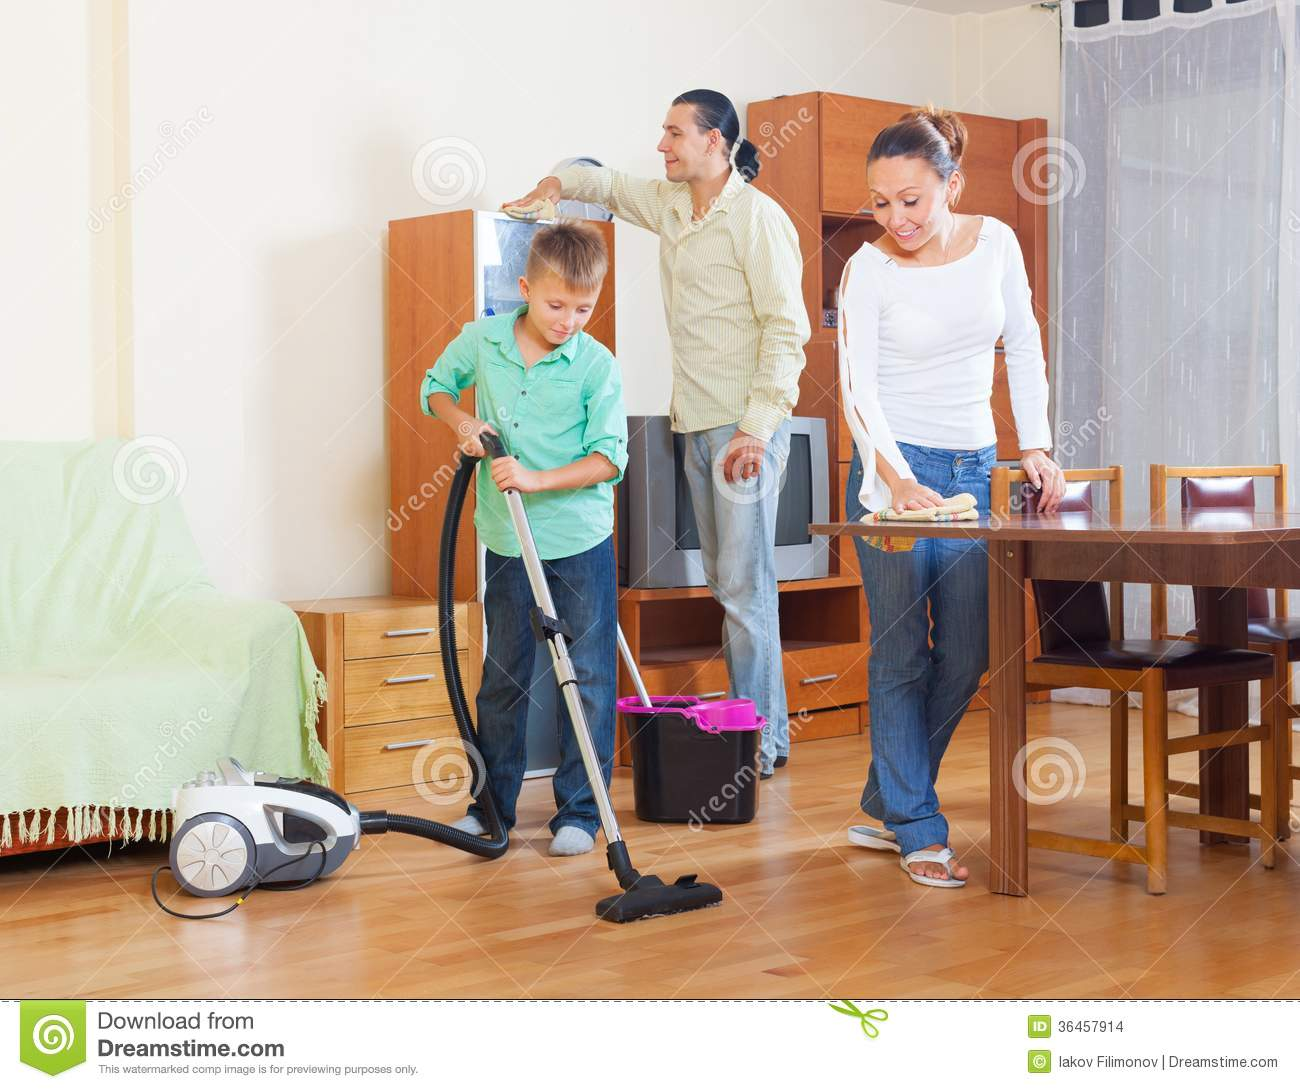 https://thumbs.dreamstime.com/z/ordinary-family-doing-housework-together-three-home-36457914.jpg